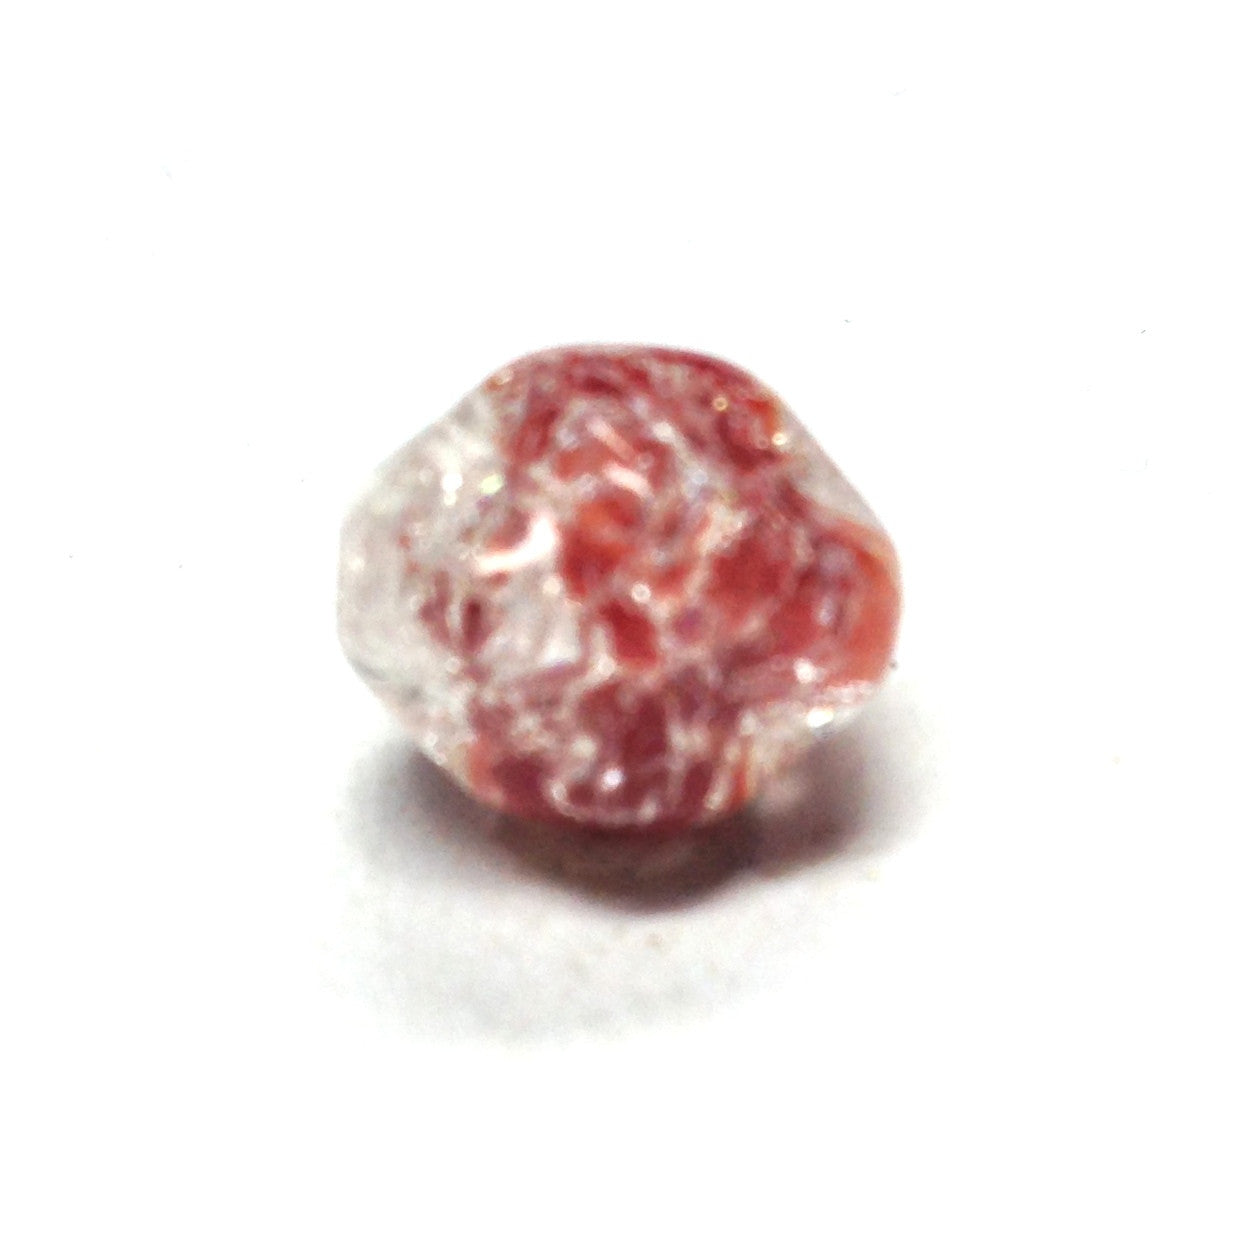 10MM Red/Cry.Crackle Barq.Bead (72 pieces)